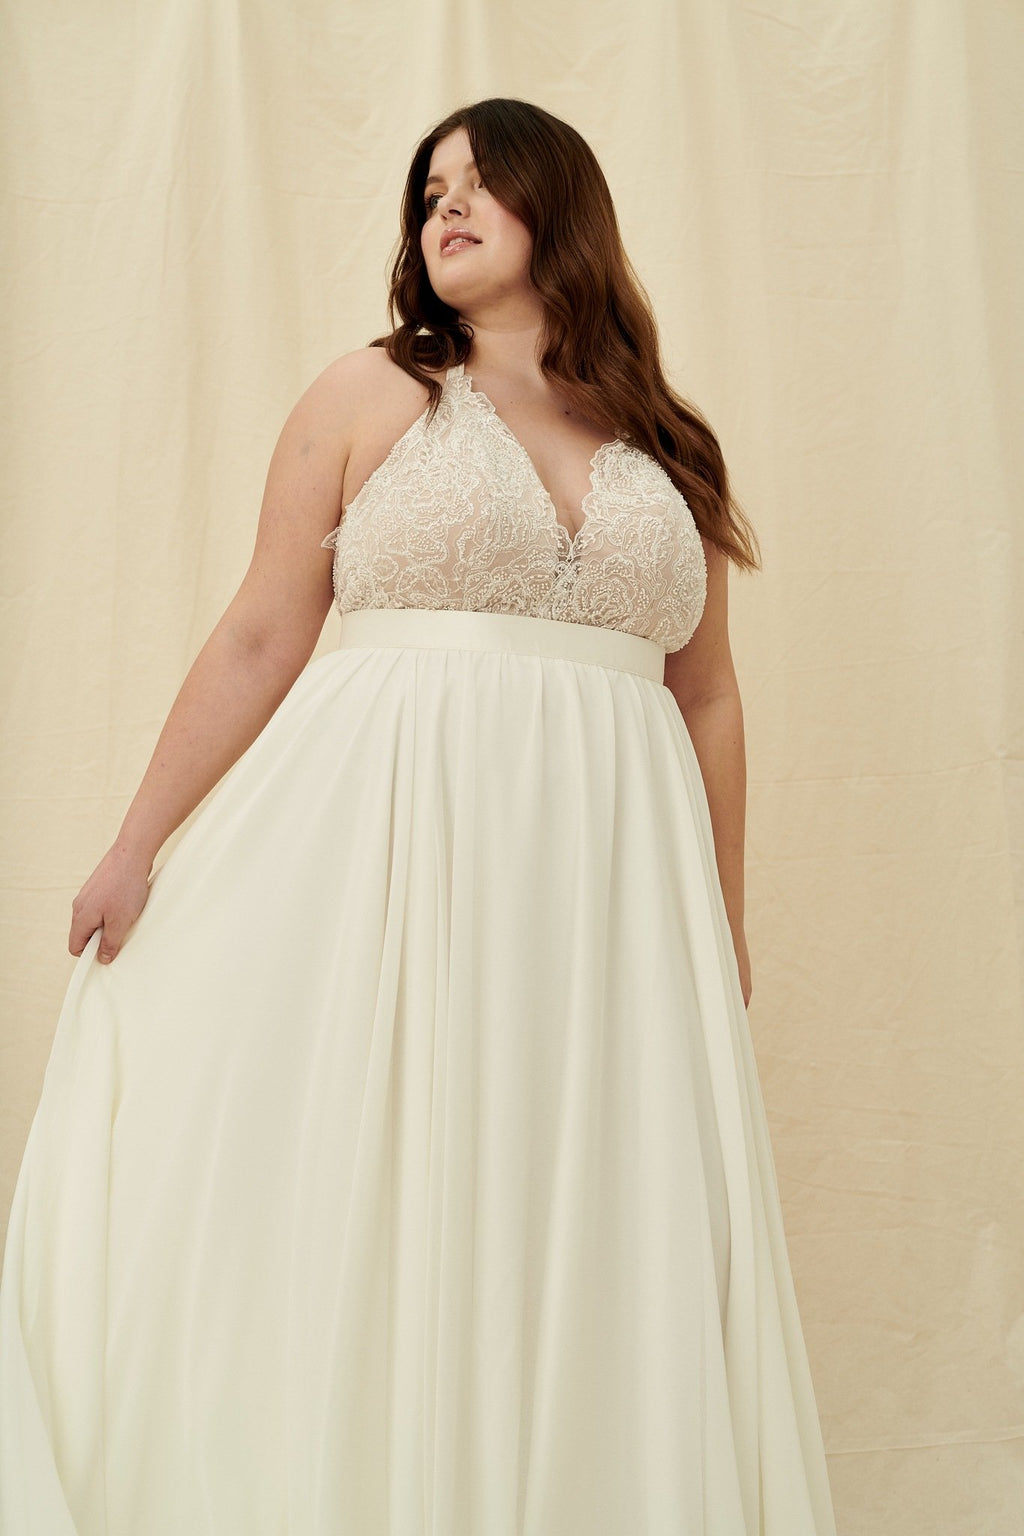 Curvy wedding dress boutiques Vancouver, Calgary